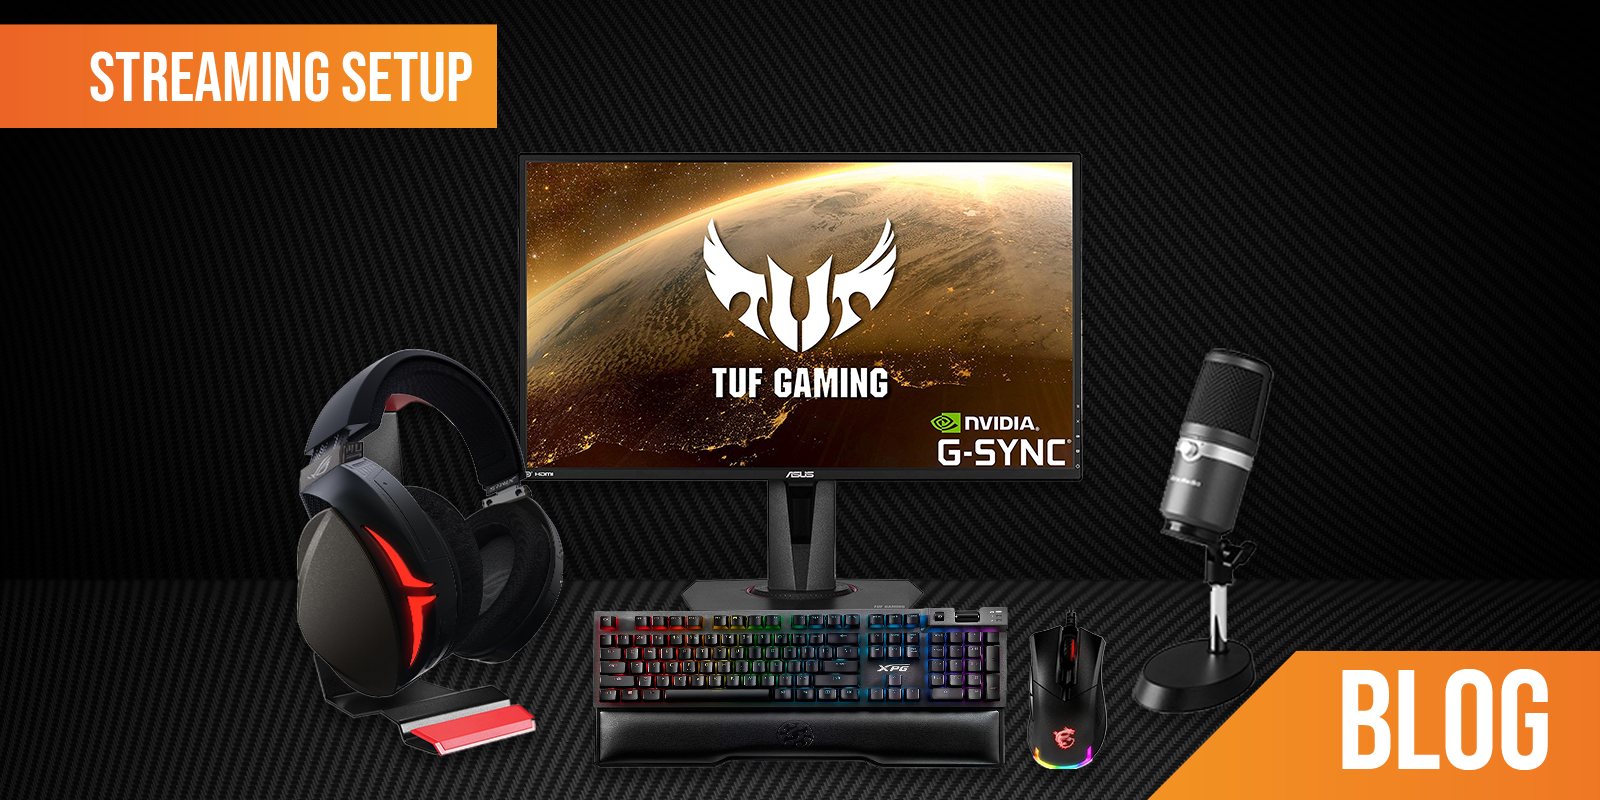 Streaming Setup: Let's take a look at the equipment you need to make your own professional streaming setup